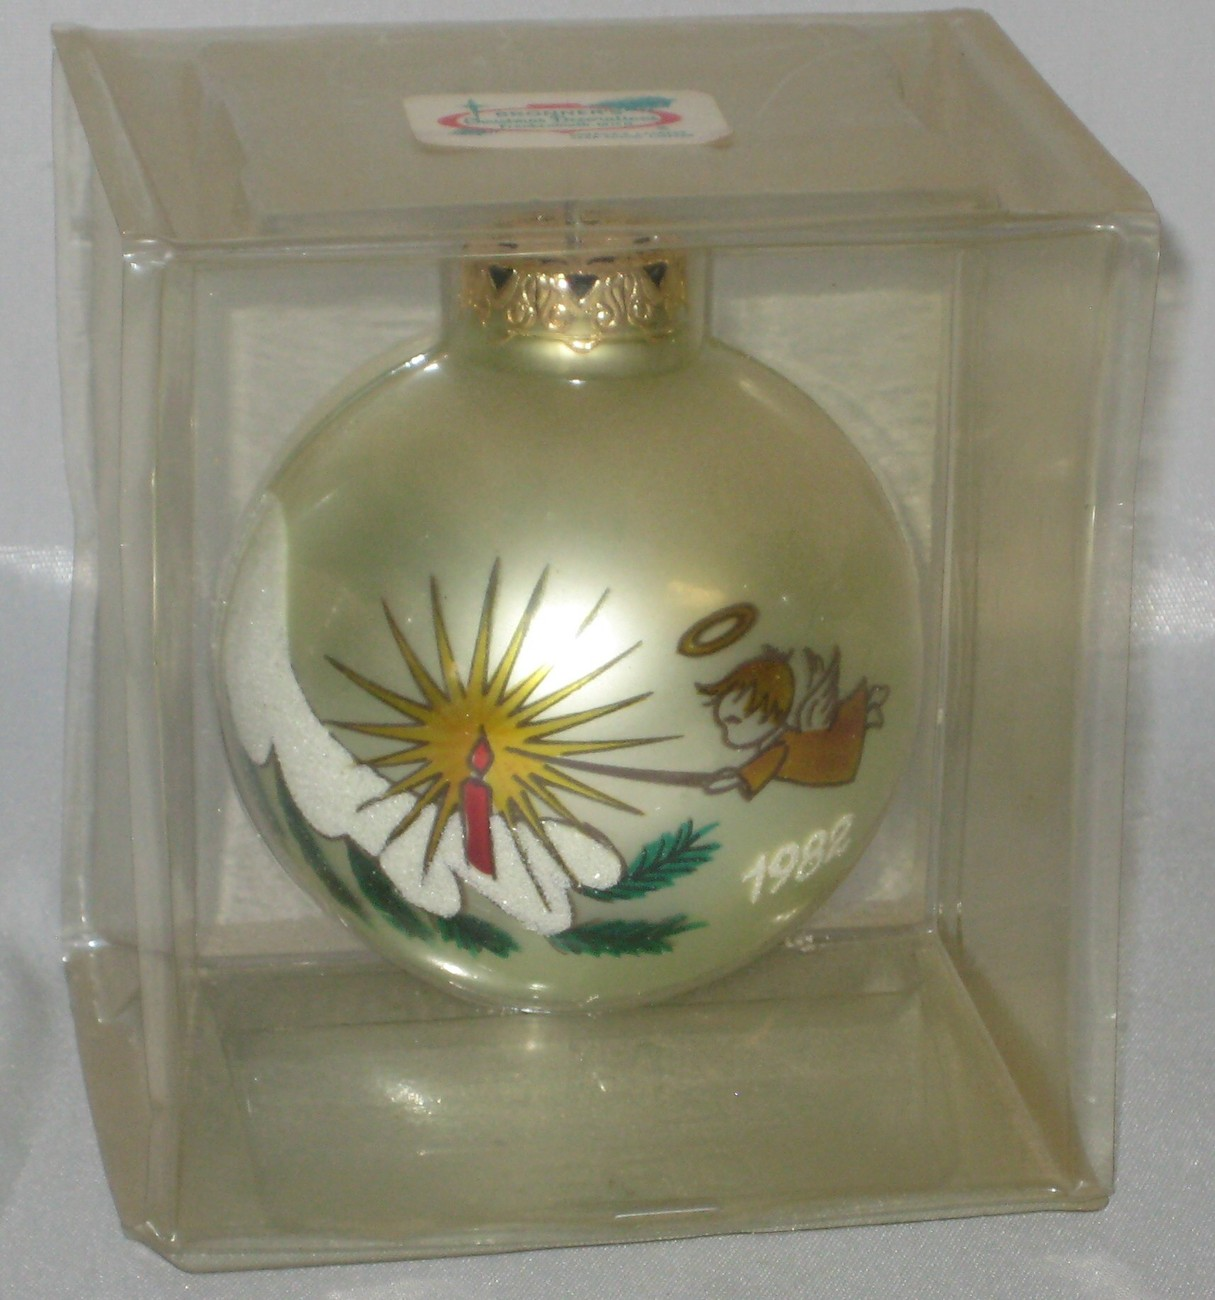 Bronners 1982 Christmas Ornament Globe Made in Austria